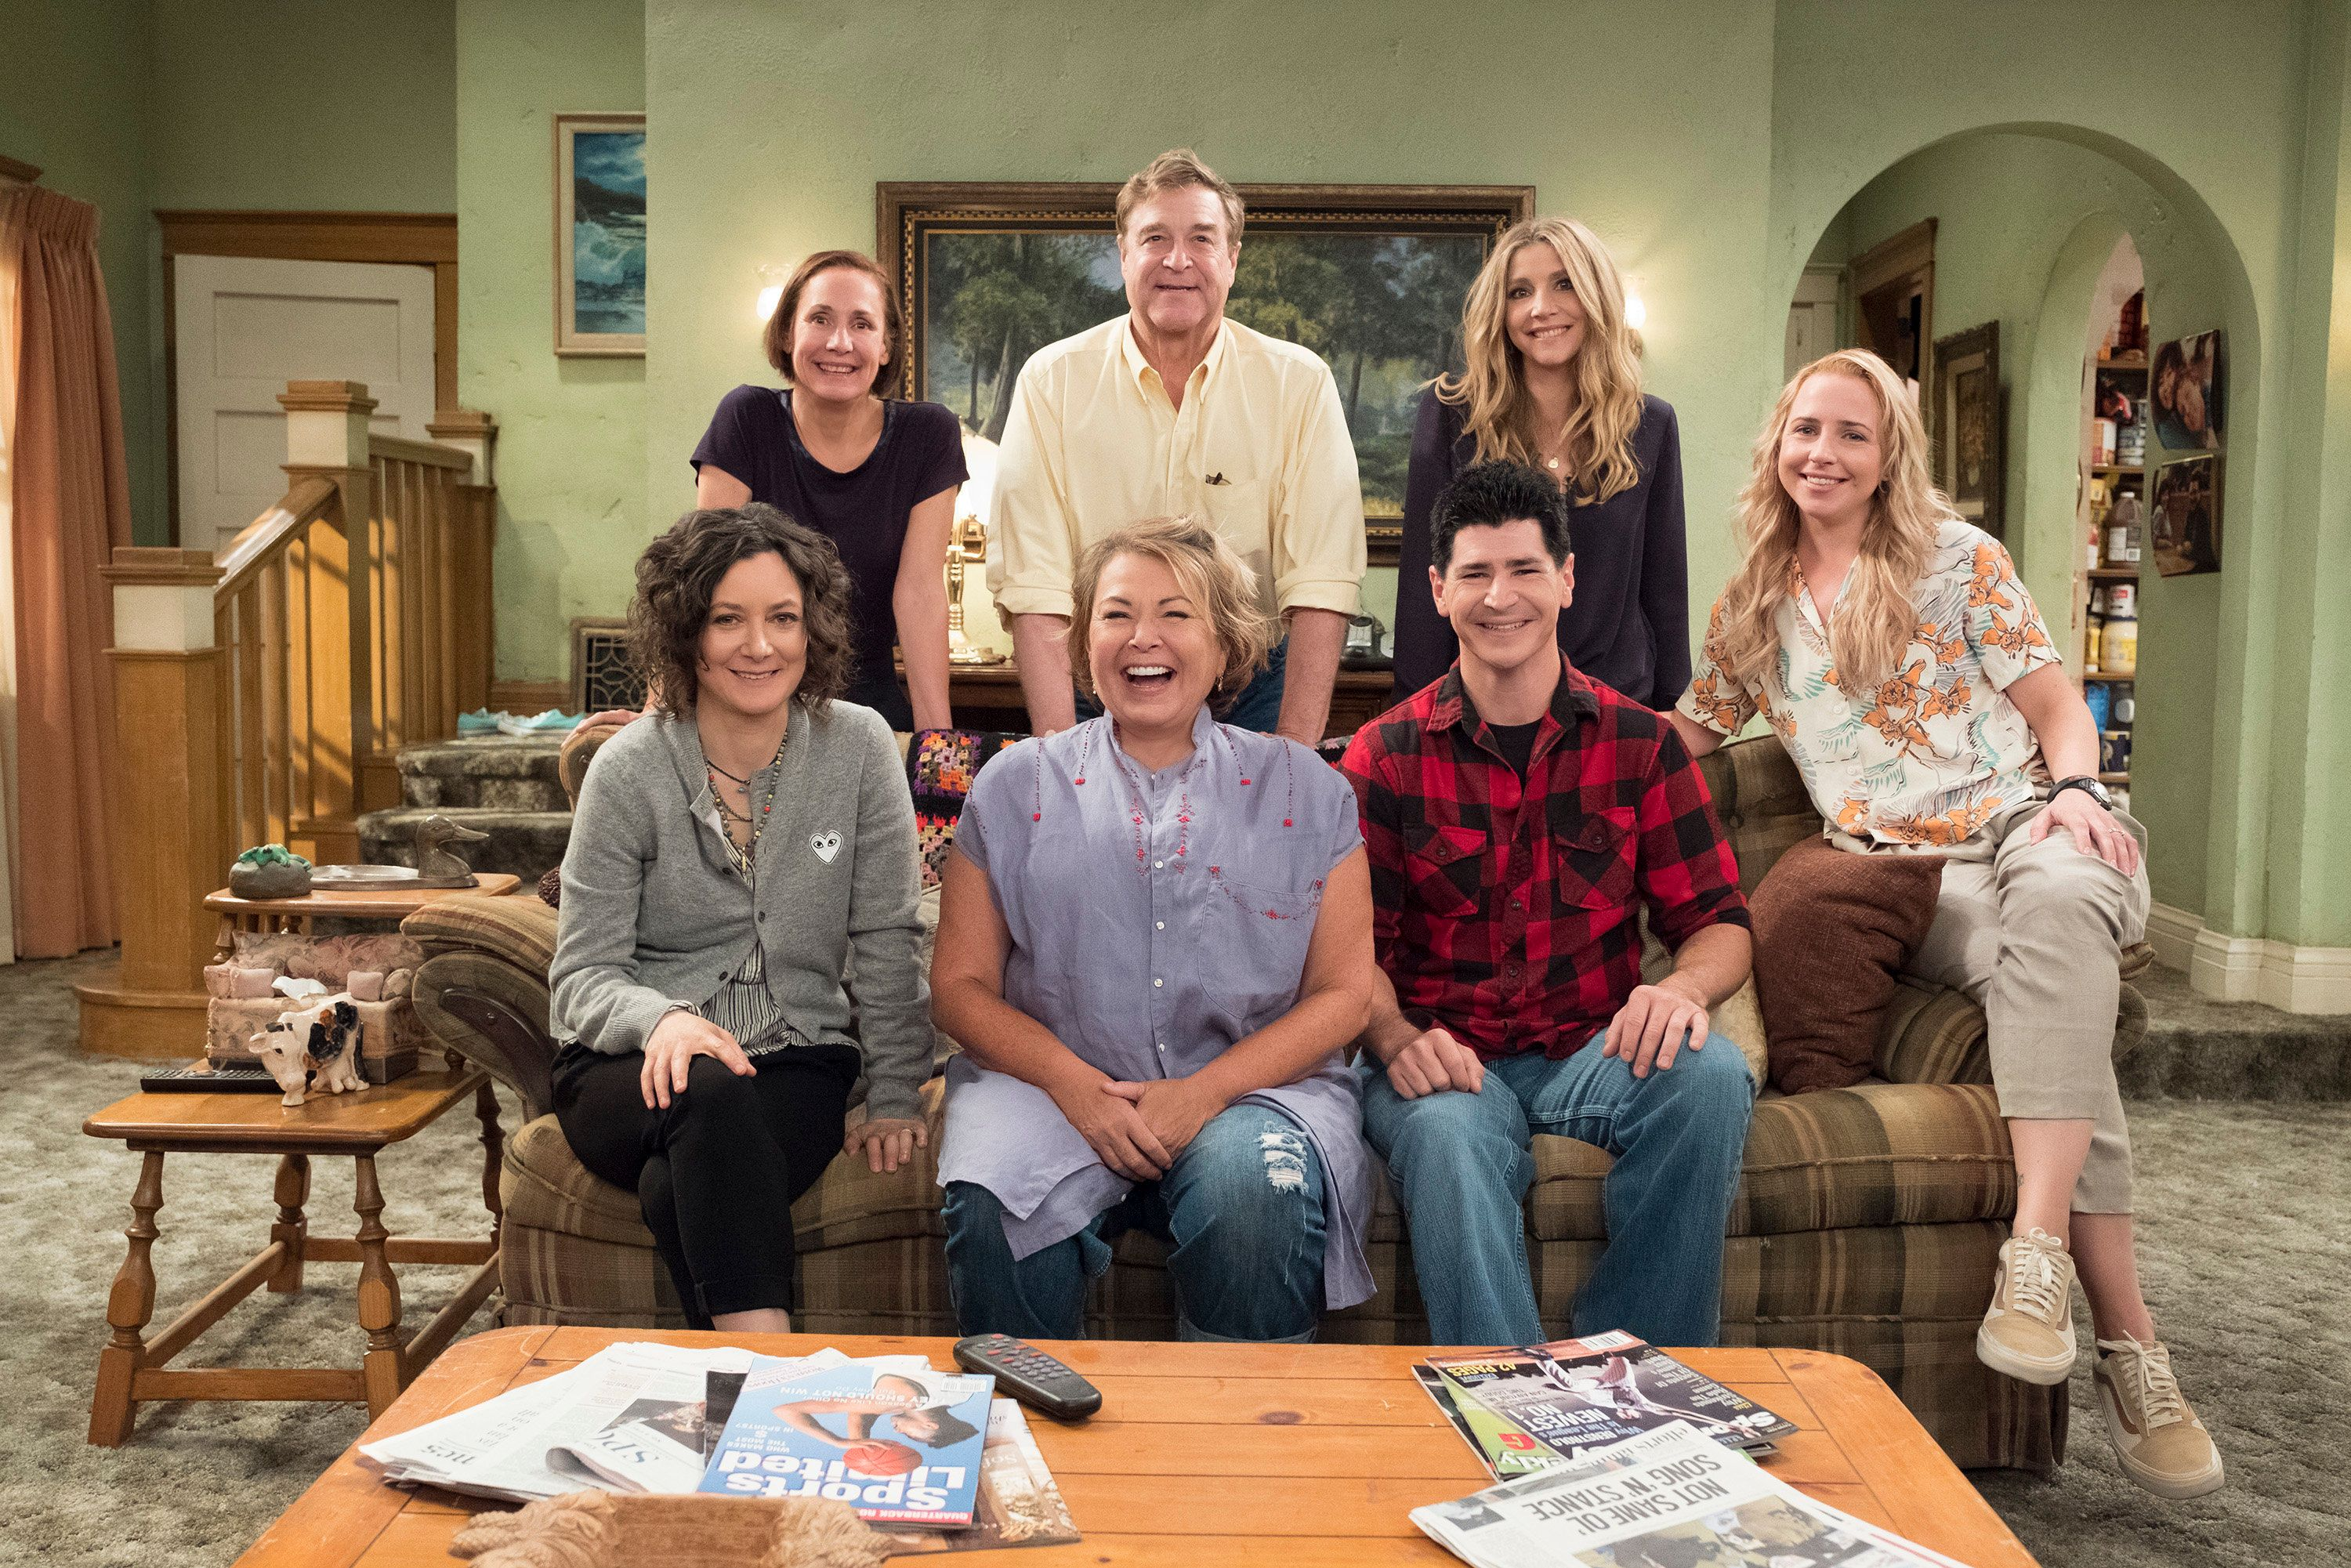 (Clockwise from upper left) Laurie Metcalf, John Goodman, Sarah Chalke, Lecy Goranson, Michael Fishman, Roseanne Barr and Sar